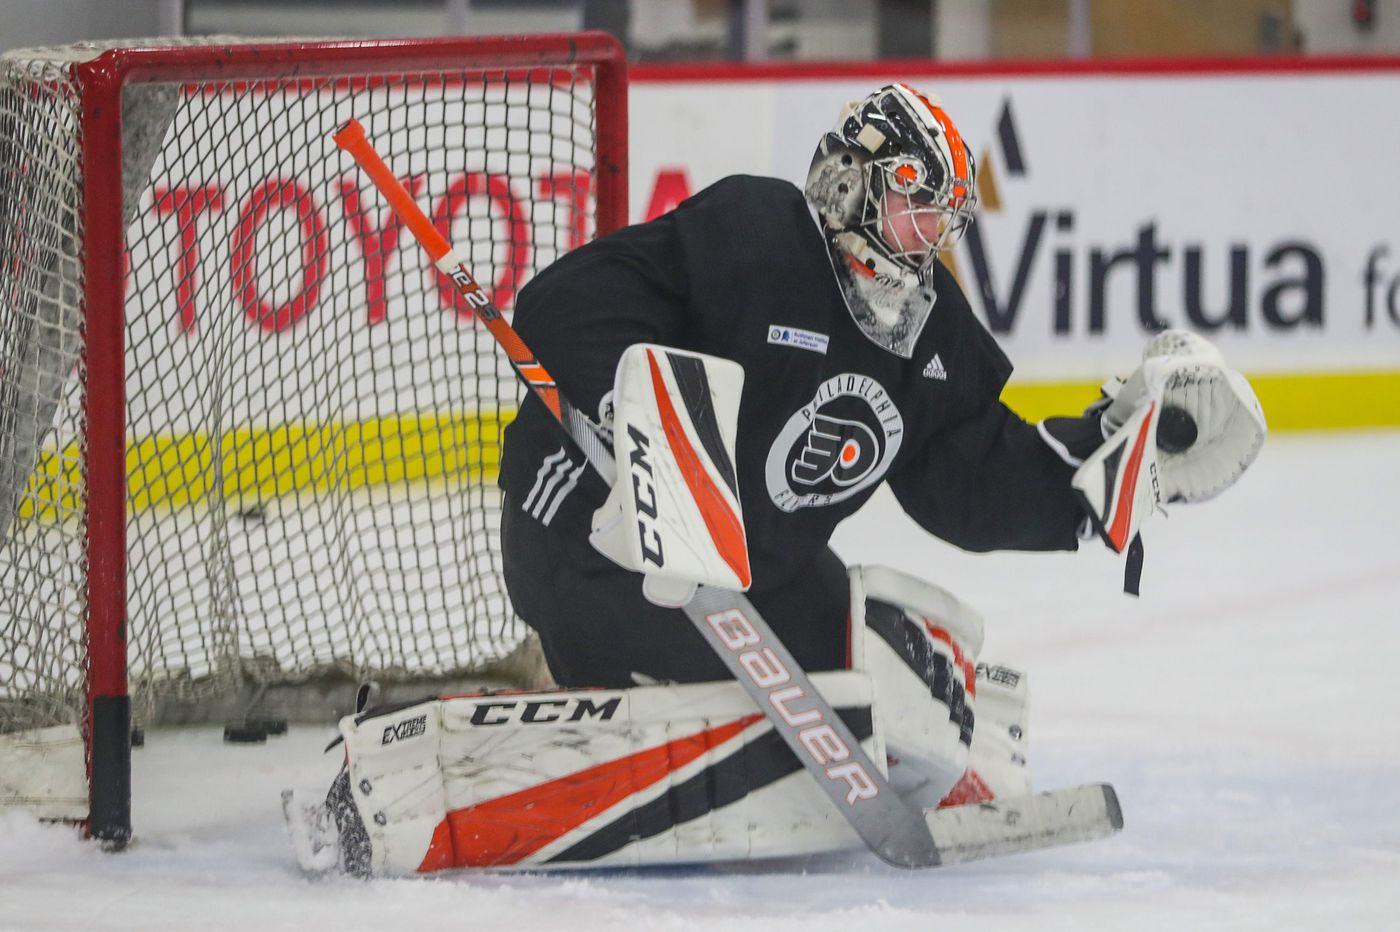 Morgan Frost, Carter Hart hopeful but realistic about making Flyers roster